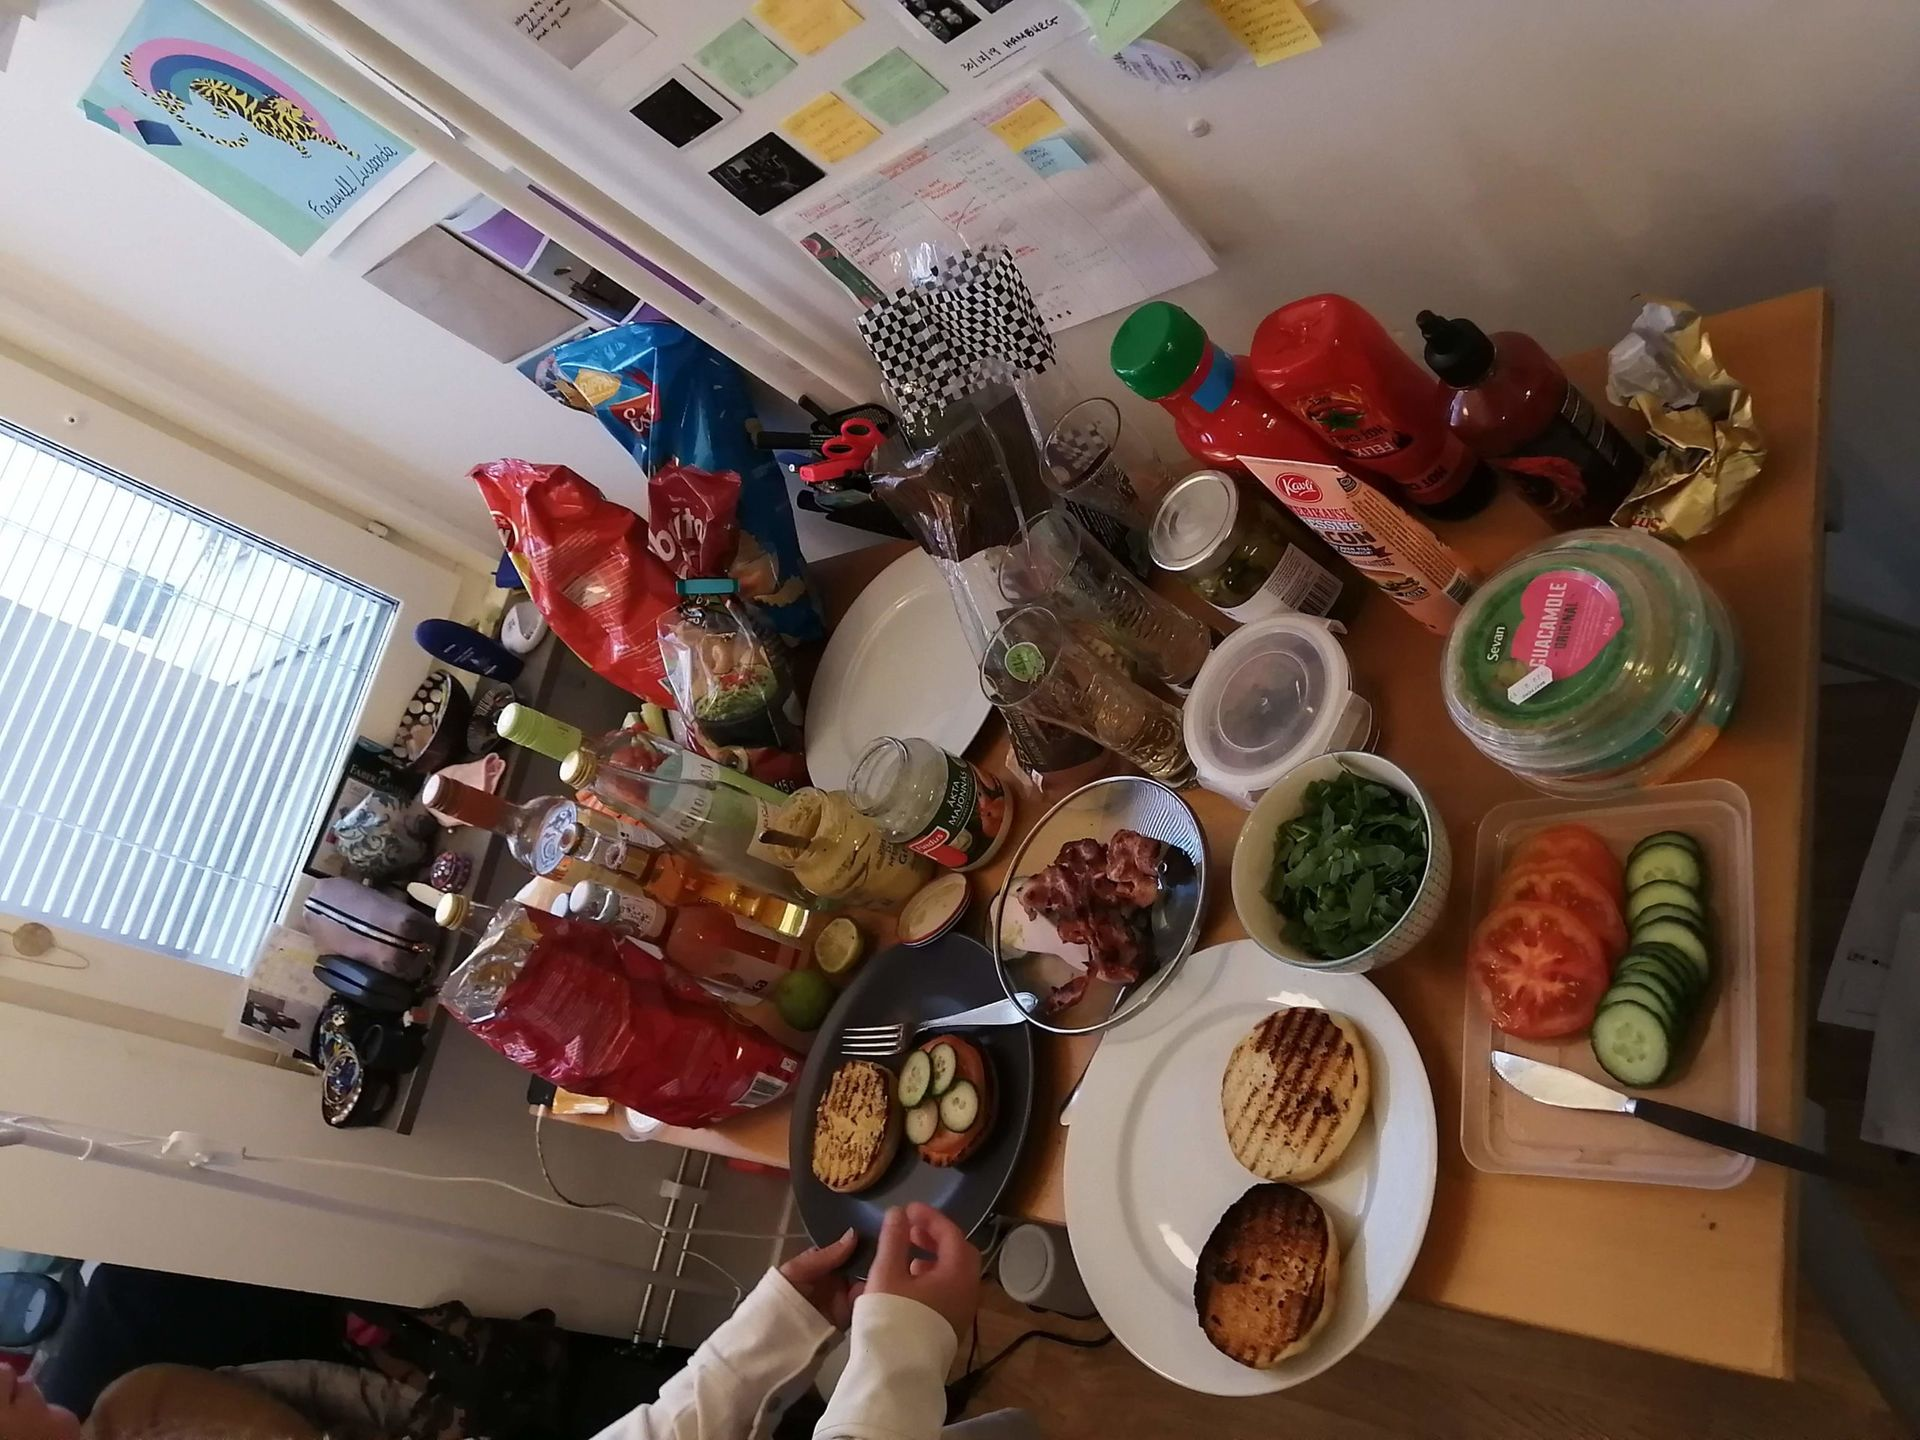 A desk filled with plates of food